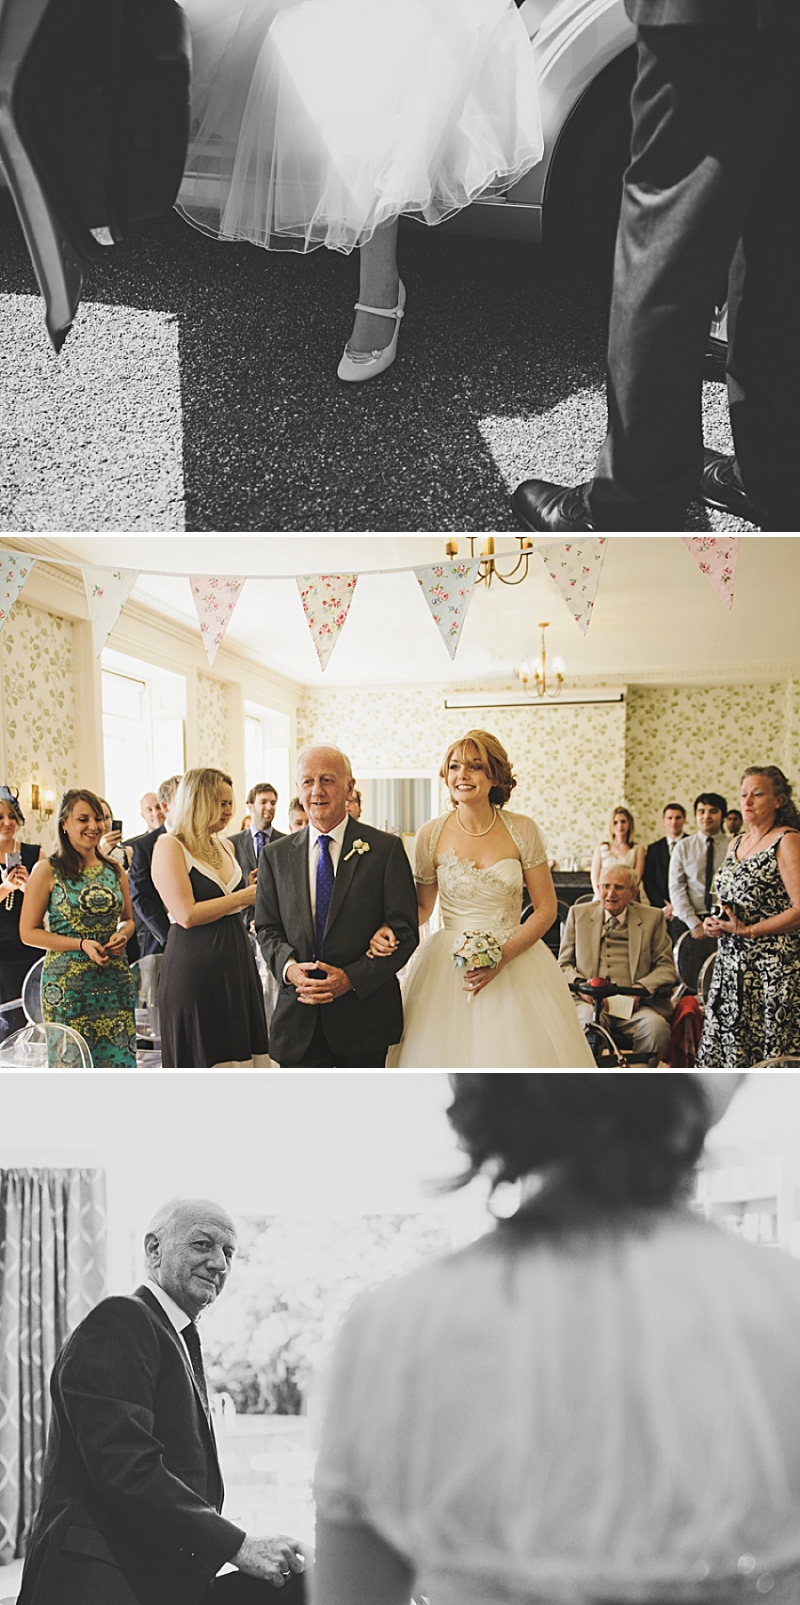 An English country garden tea party wedding with vintage touches at Valentines Mansion. Rachael Simpson shoes and photographs by Rik Pennington_0005